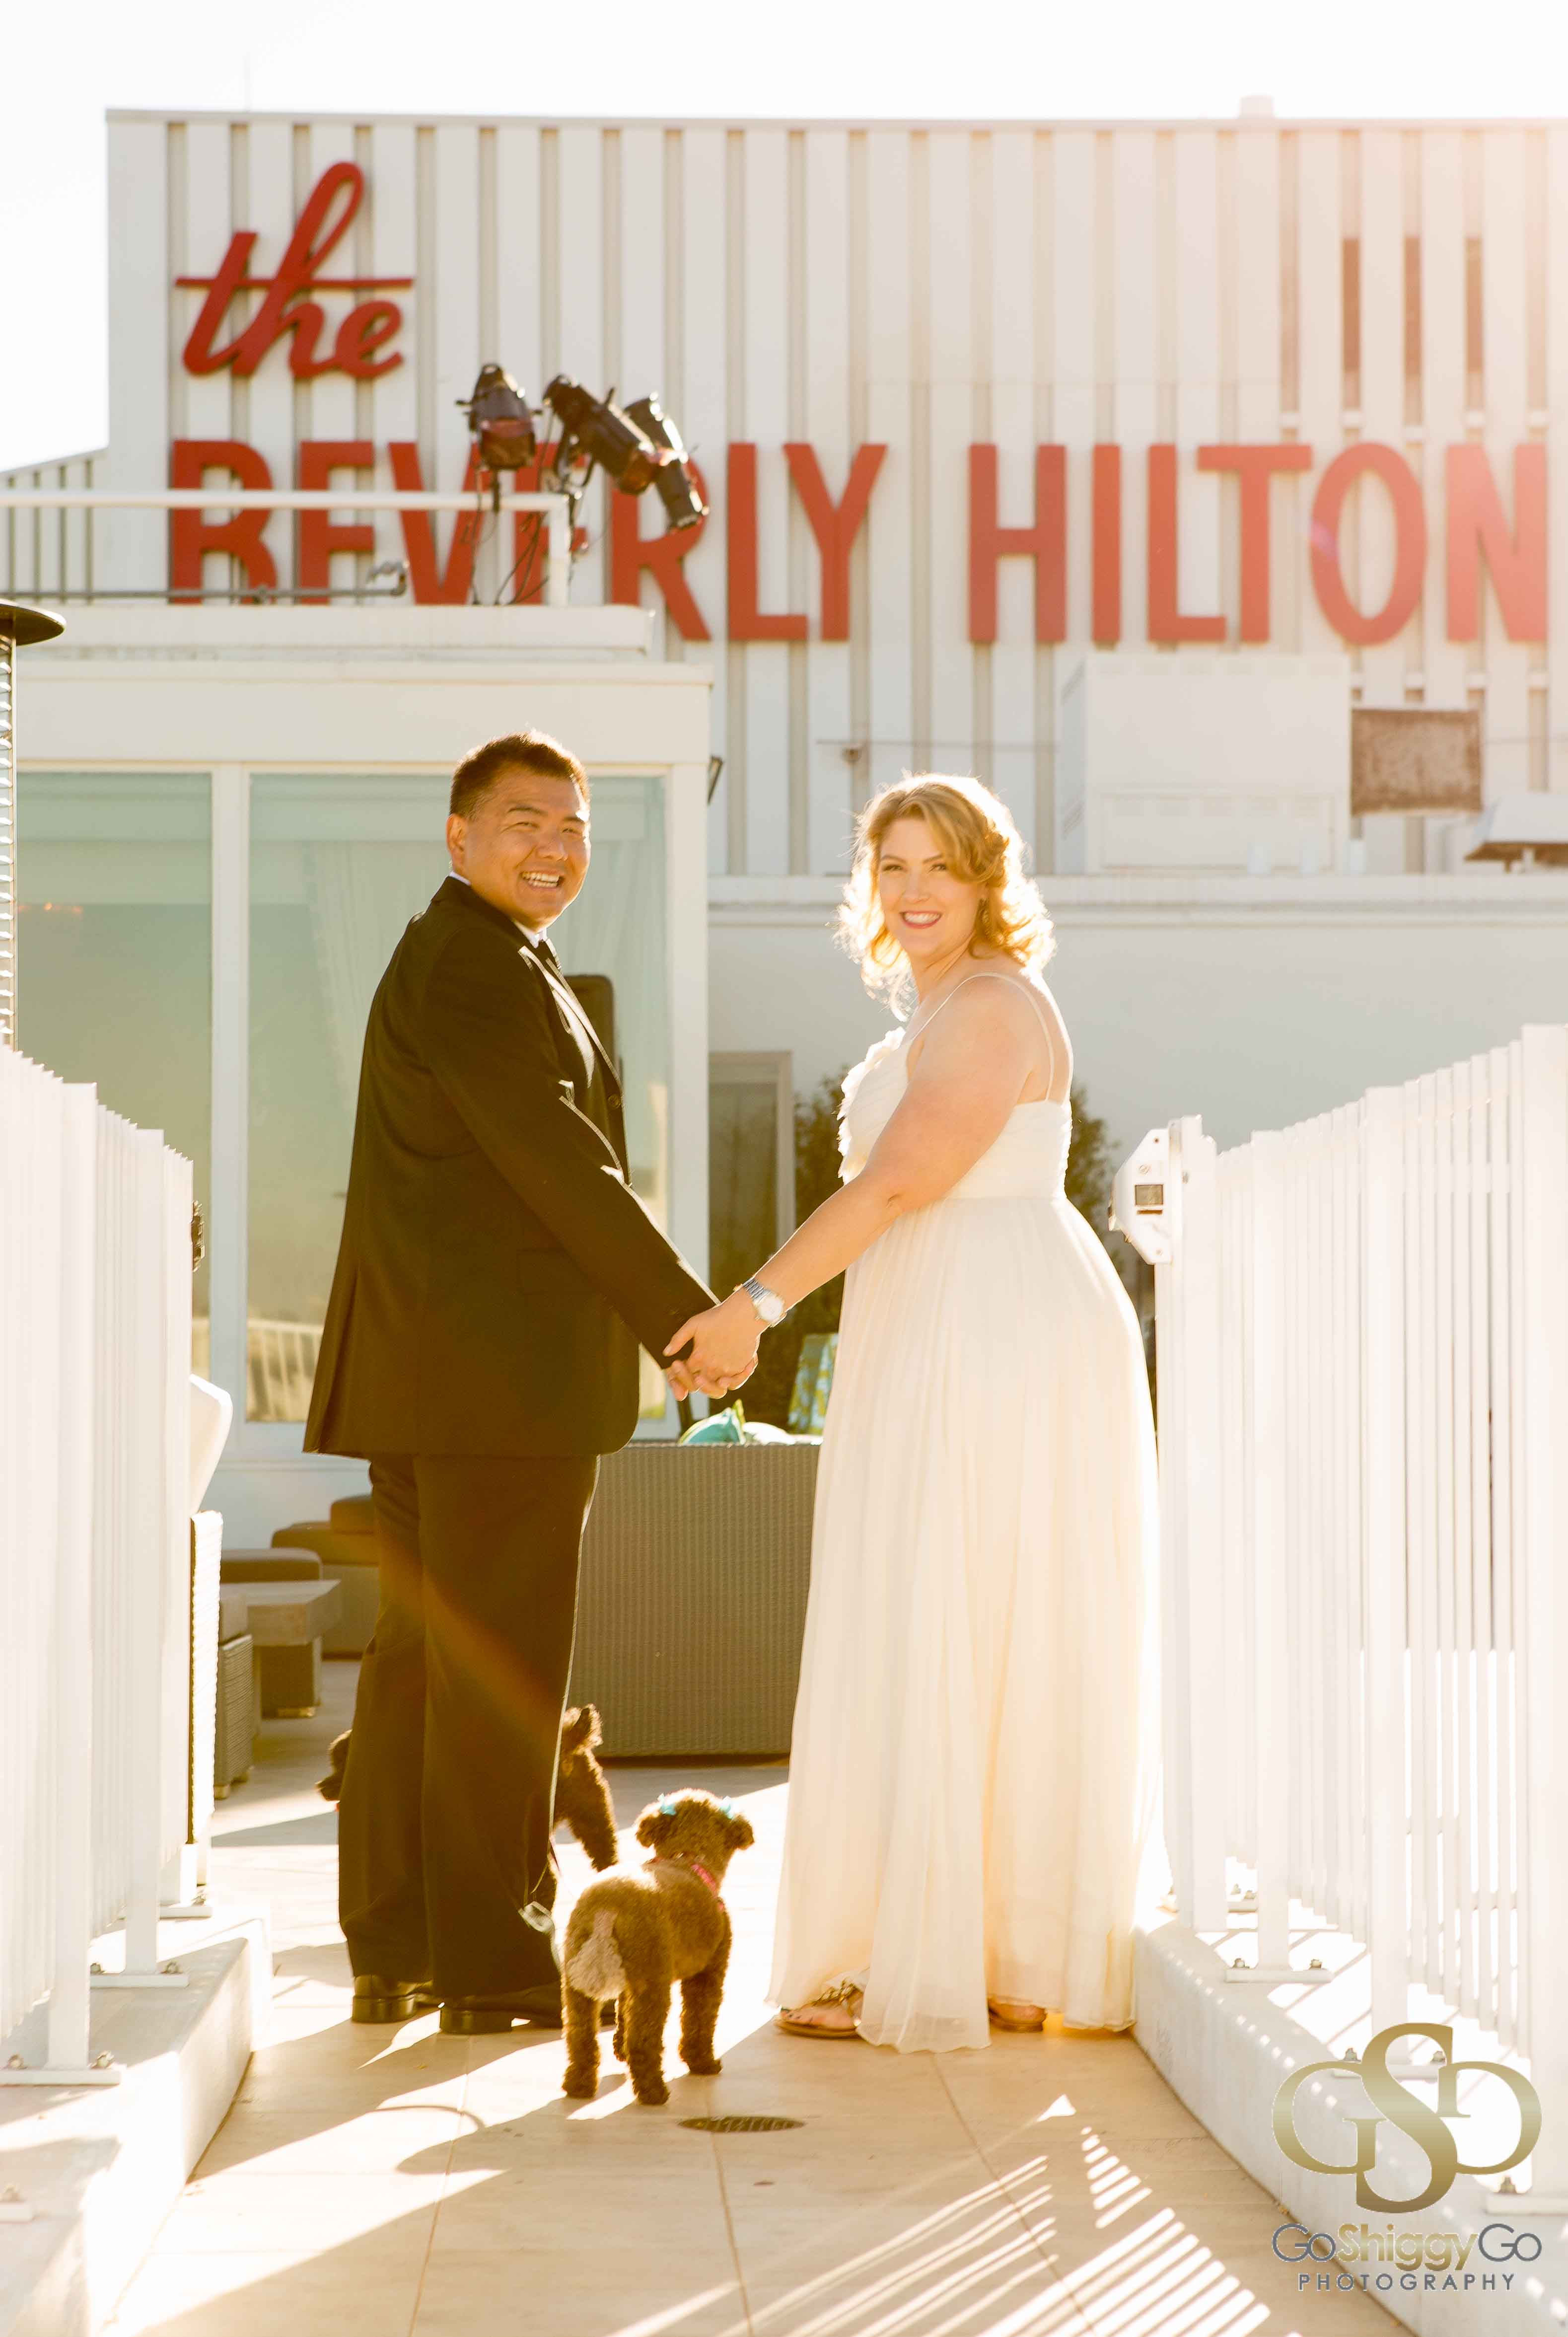 Beverly Hilton Wedding